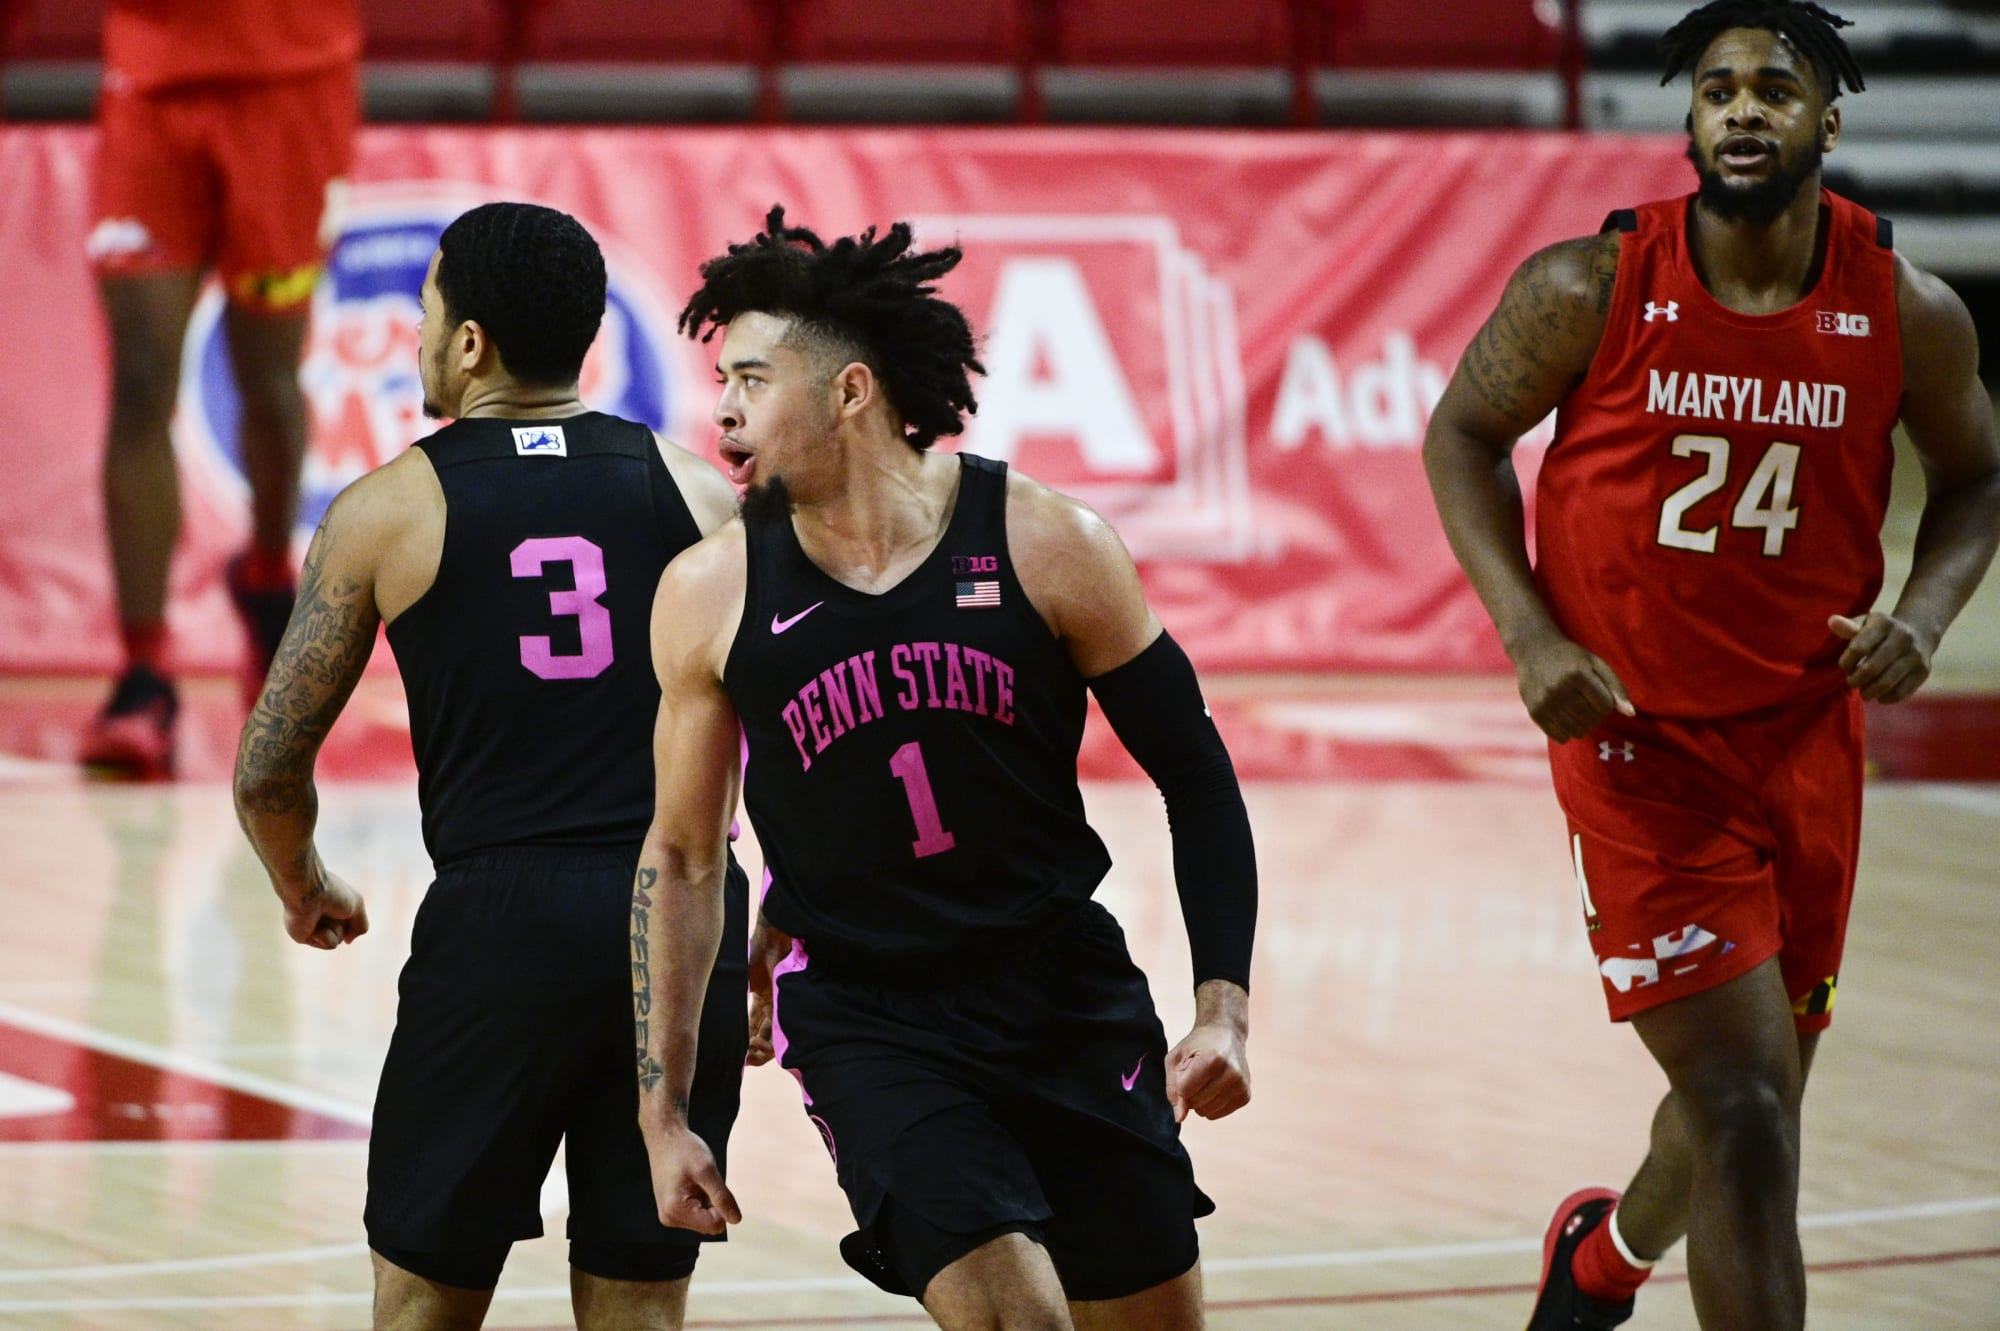 Penn State Basketball's opponent set for 2021 Emerald Coast Classic